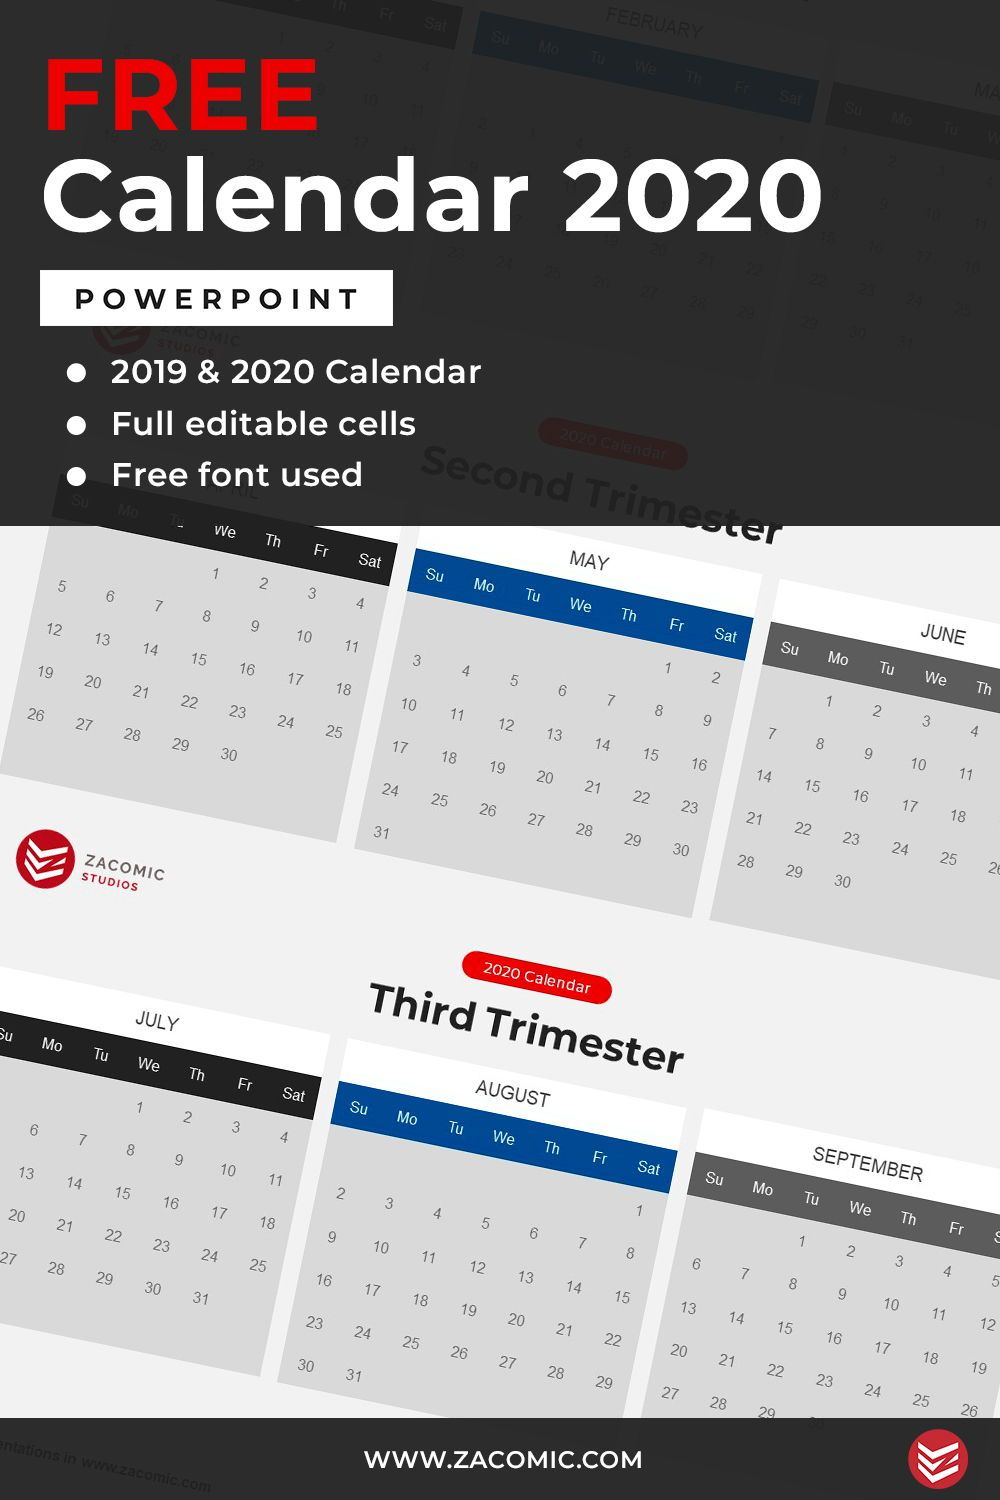 Free 2020 Calendar Powerpoint Template Template For Powerpoint Calendar Template Powerpoint Templates Powerpoint